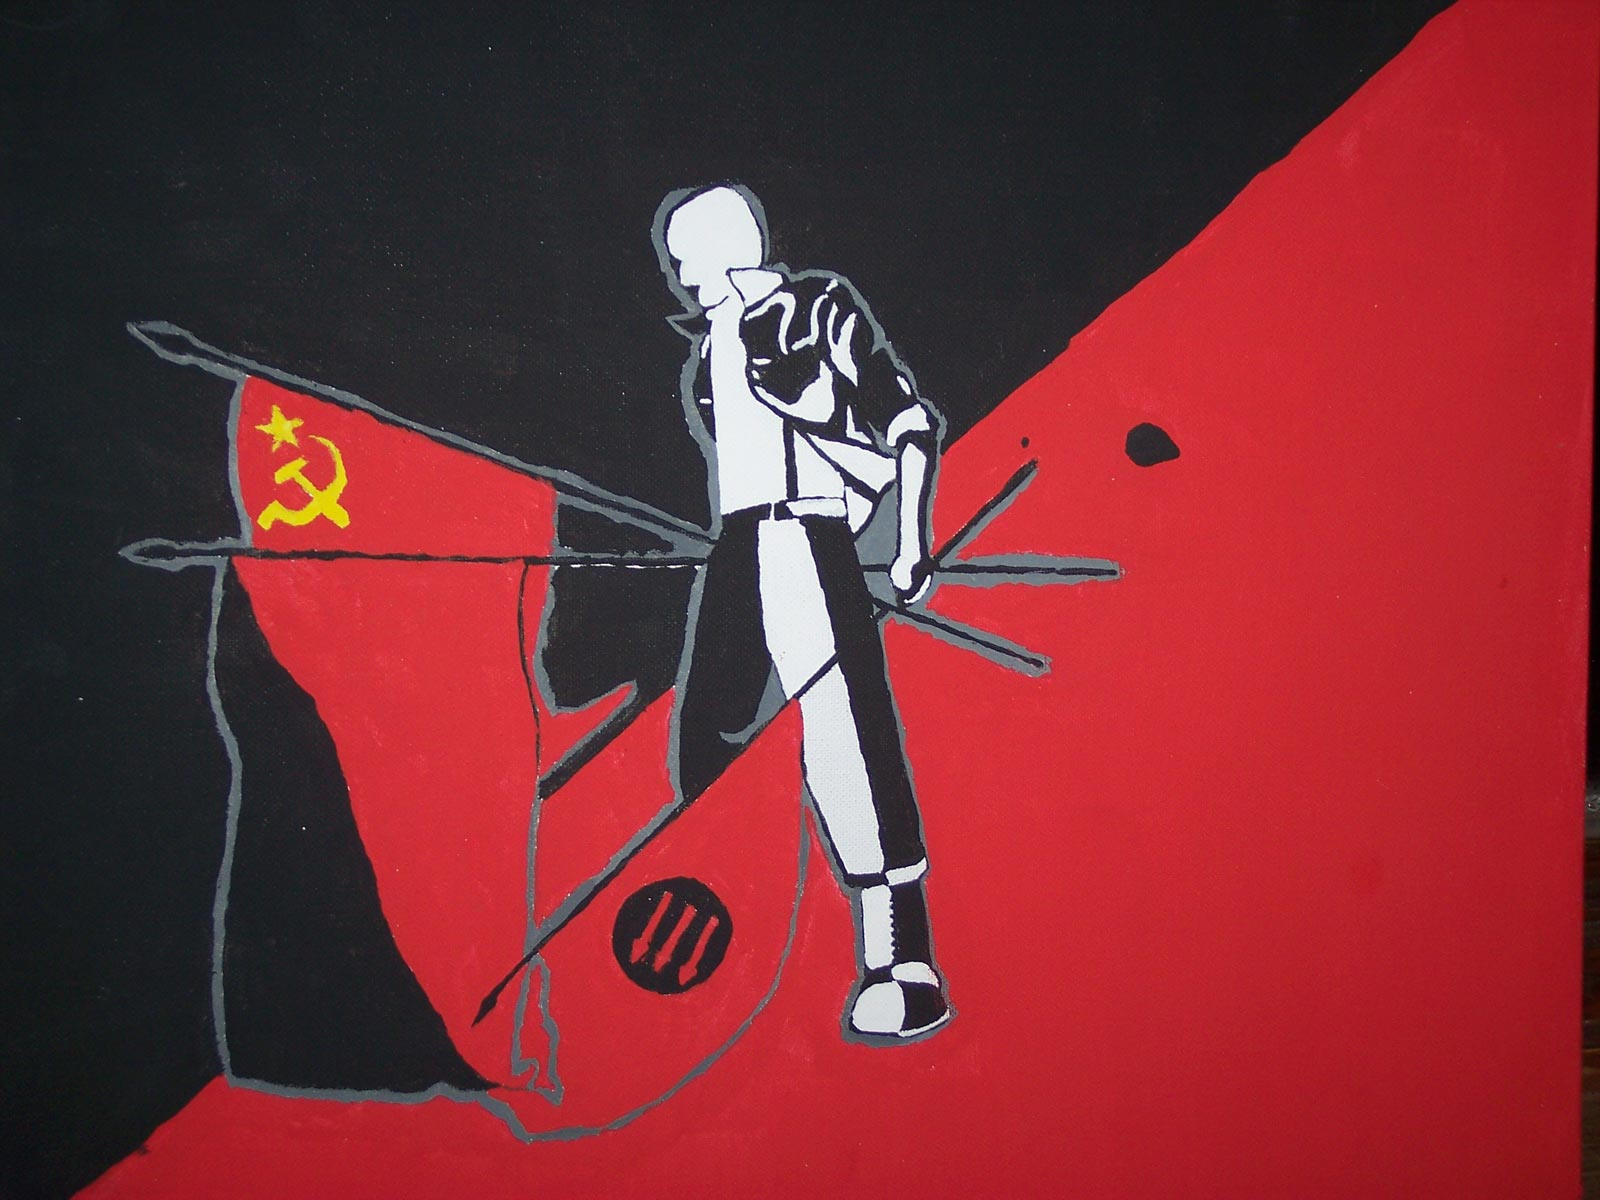 a discussion of anarchism and its political theories The author extends anarchist criminology theory into the realm of practice,  describing practical  and criminology fit together is necessary to the discussion   as the political unit grows, the nobility becomes a smaller percentage of the.